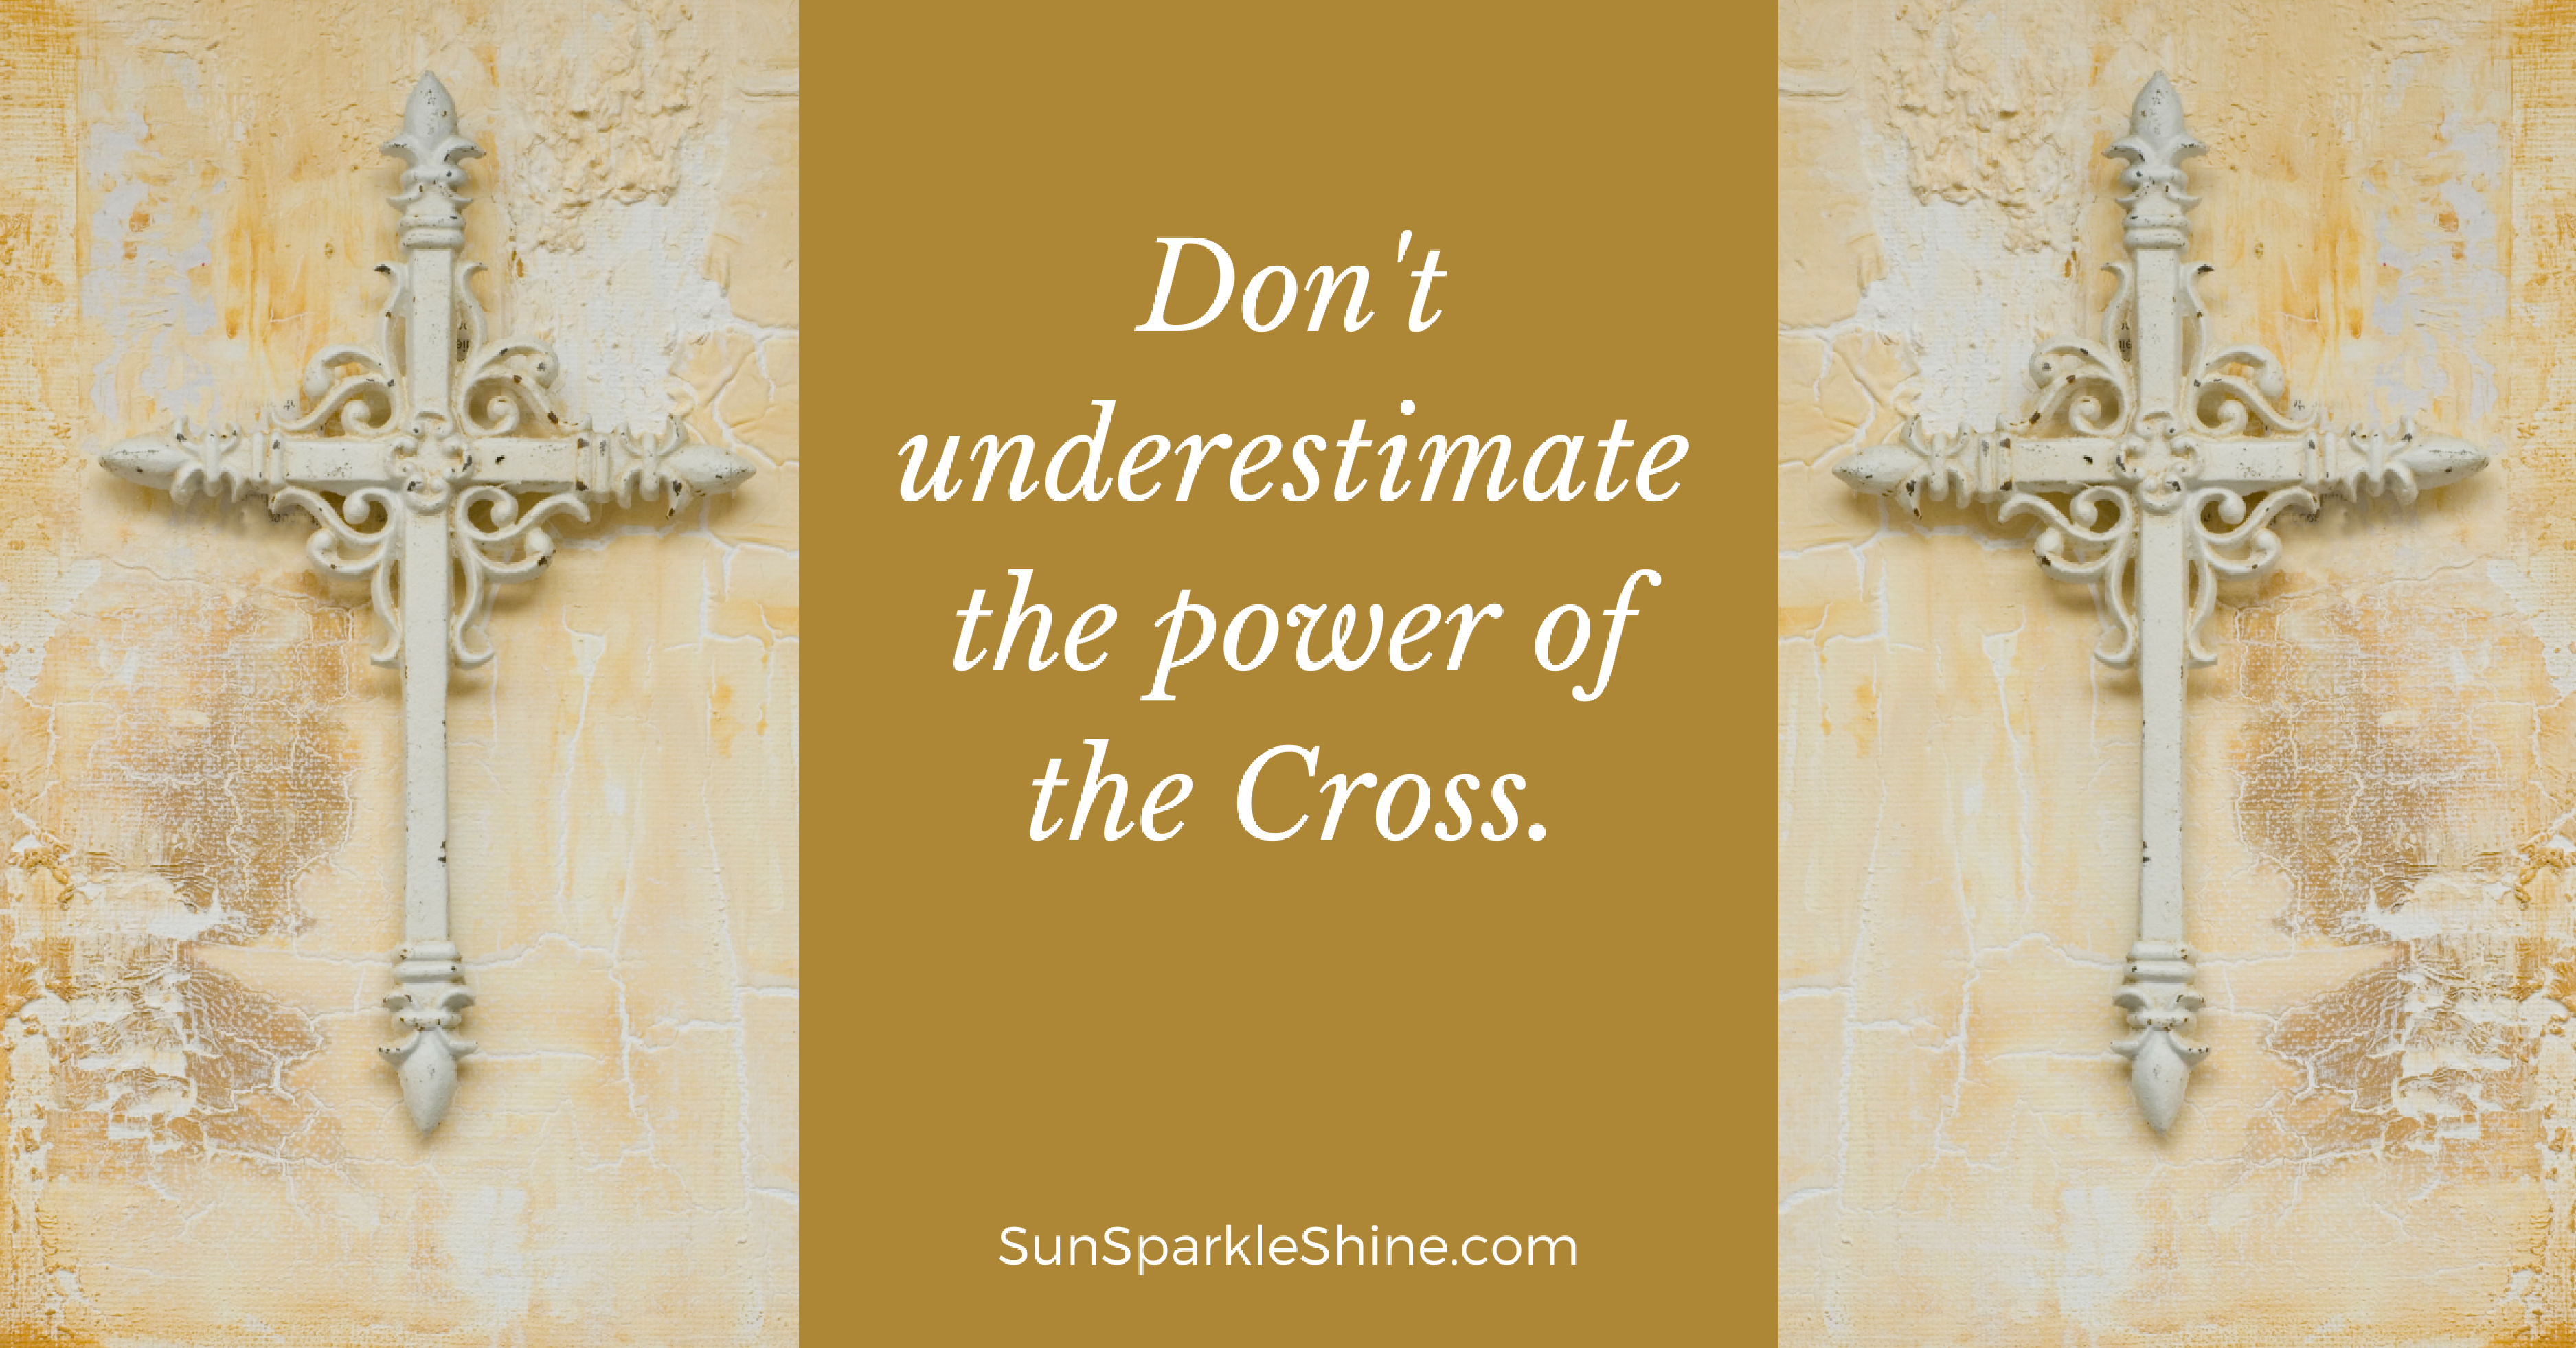 The Cross of Christ is a beautiful image of God's love for us but is it just a symbol? Or does the Cross have the power to transform our lives? To find out more, read this devotional with prompts from the old hymn When I Survey the Wondrous Cross on SunSparkleShine.com.